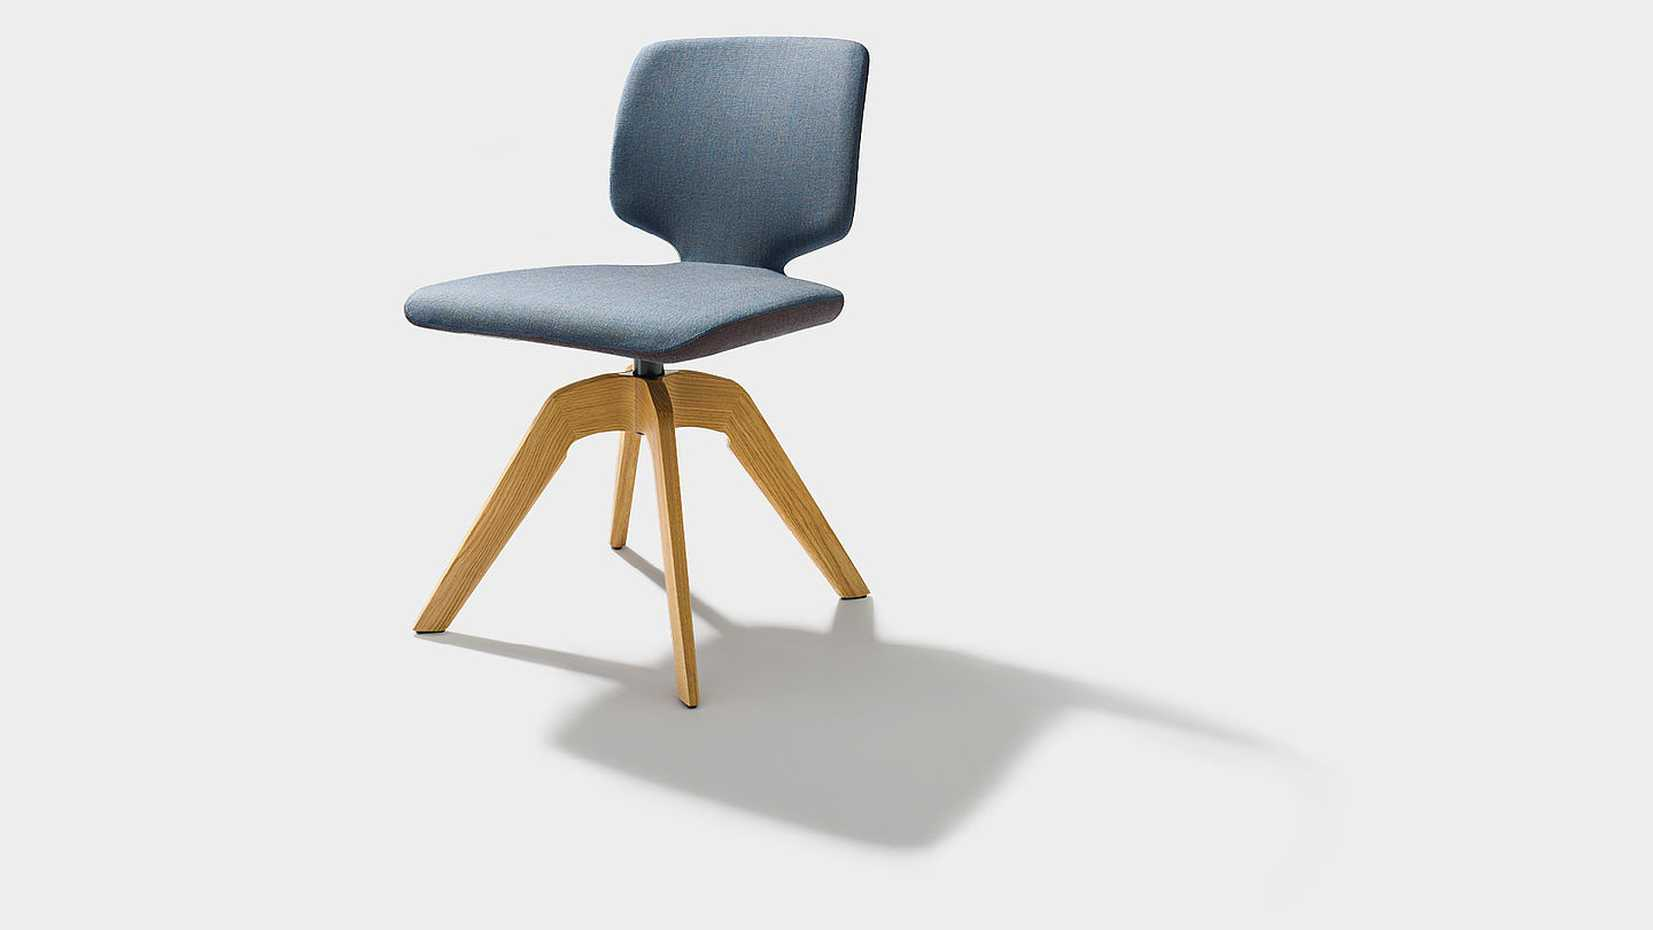 Aye Swivel Chair by Team 7 product image 3